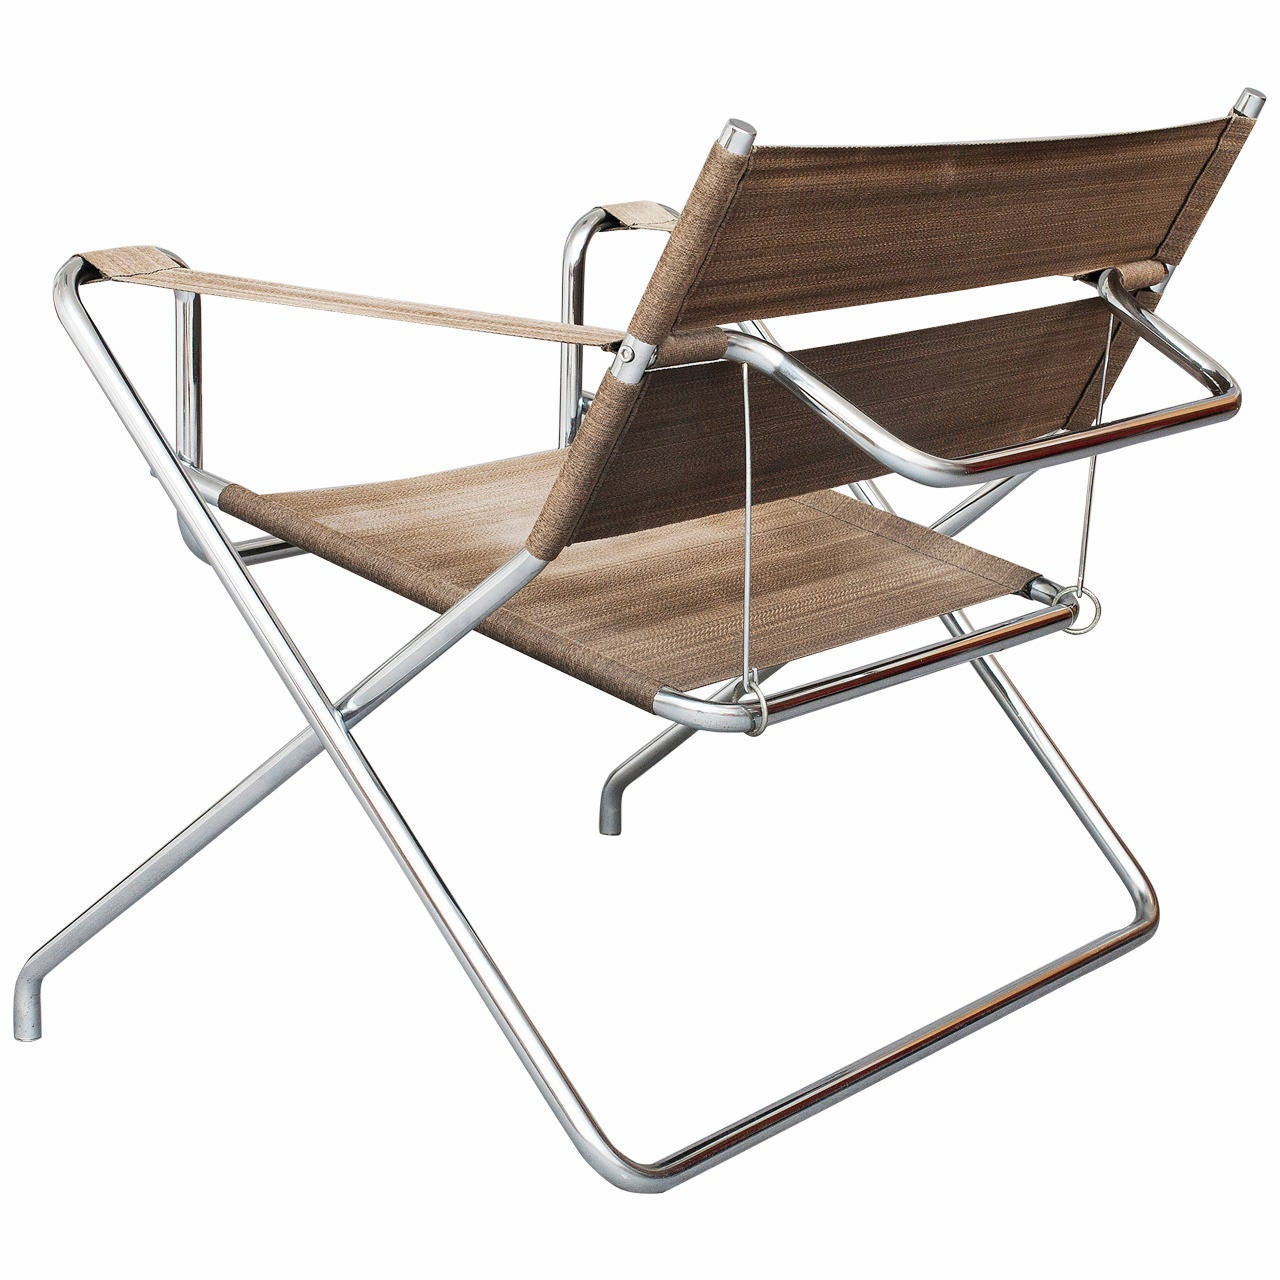 Folding Chair Model D4 By Marcel Breuer For Thonet At 1stdibs